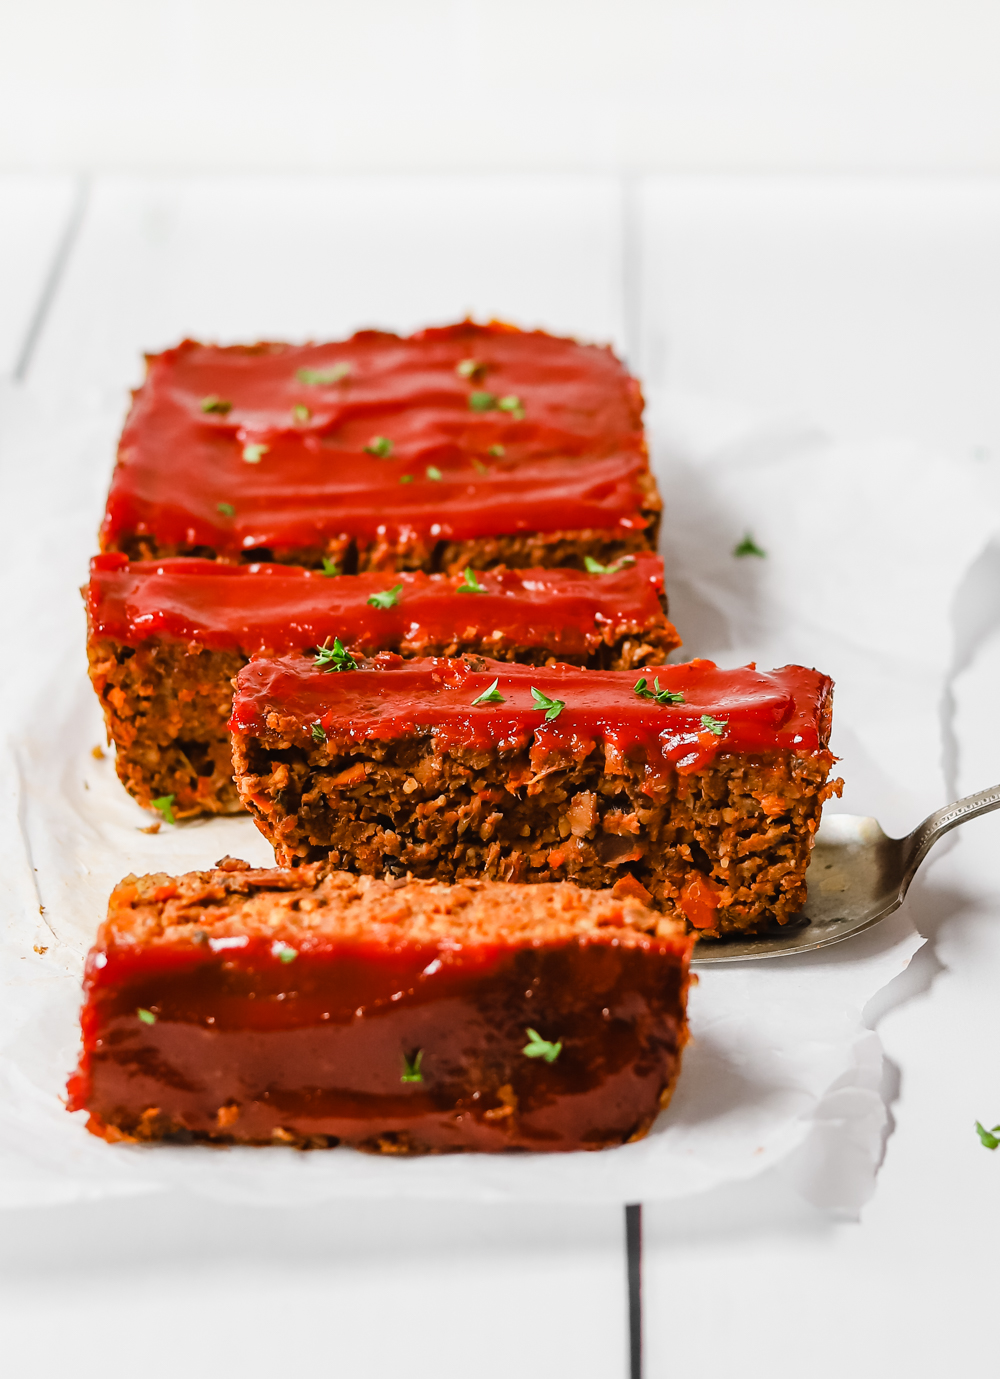 Vegan meatloaf with ketchup glazed sliced into pieces and sitting on white parchment paper.